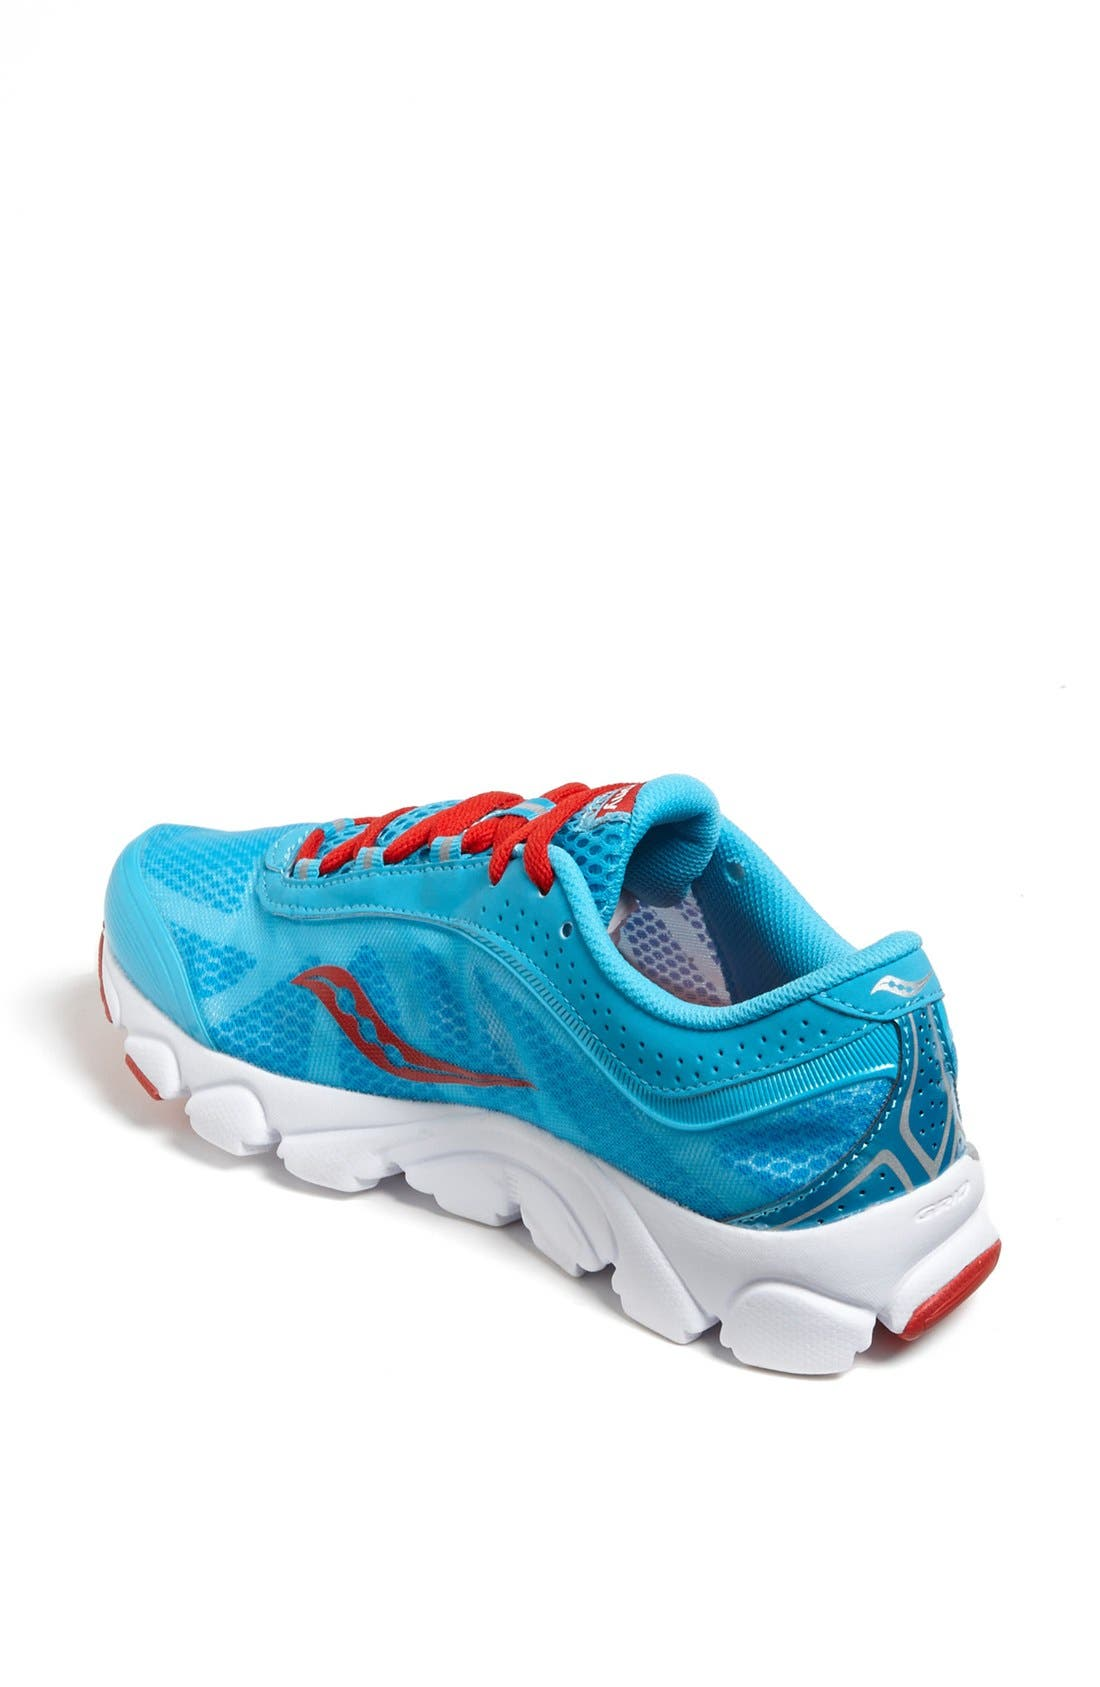 Alternate Image 2  - Saucony 'Virrata' Running Shoe (Women)(Regular Retail Price: $89.95)